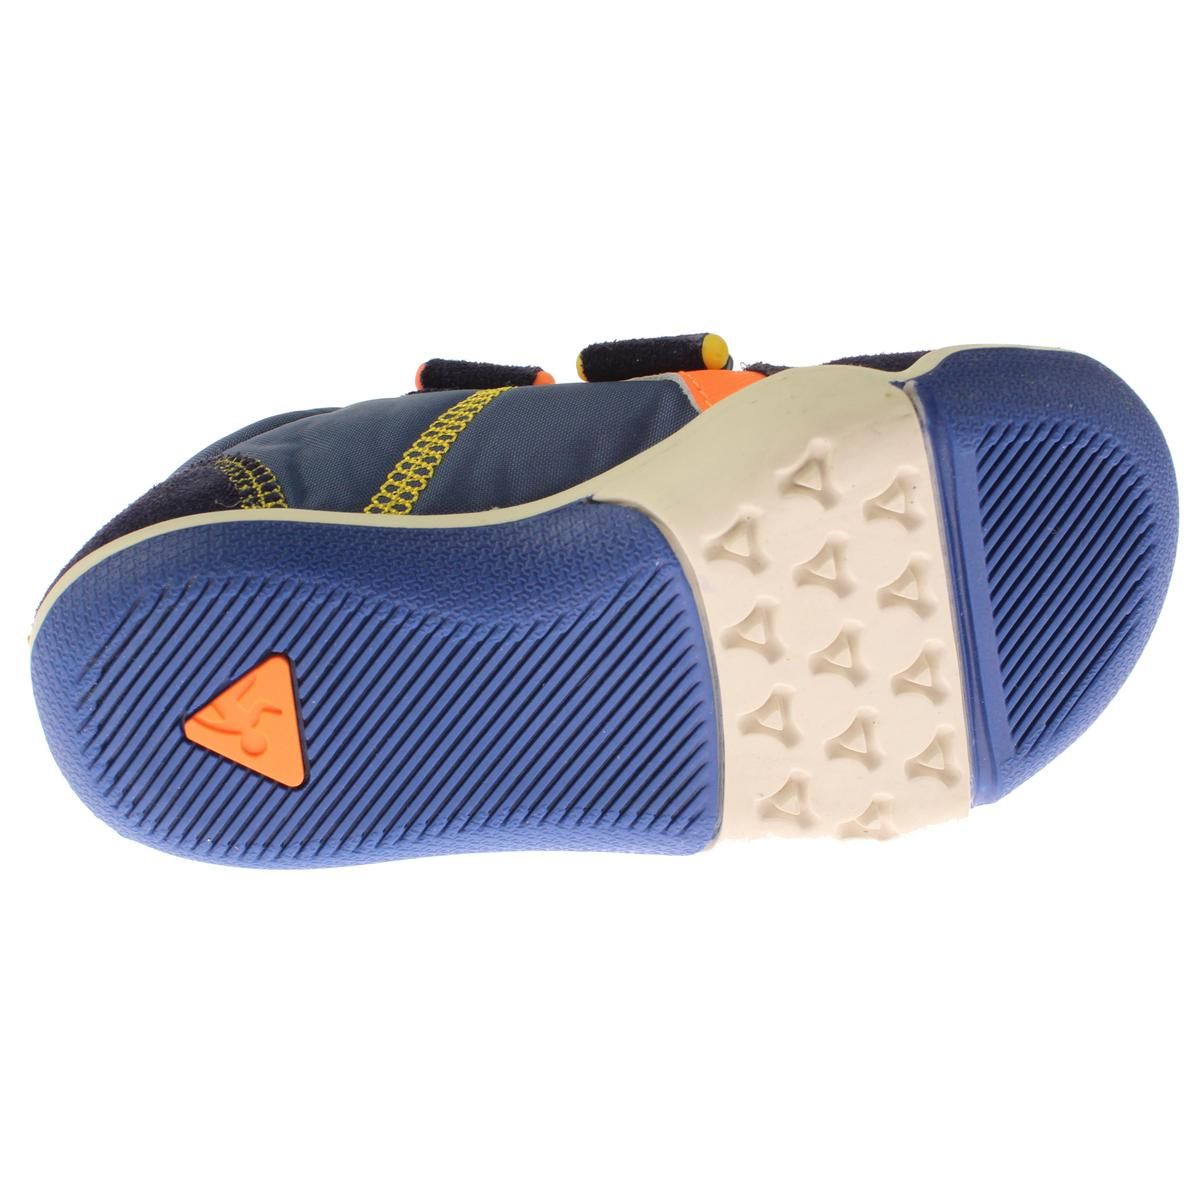 Plae Boys Slip On Suede Trainers Athletic Shoes Sneakers BHFO 5226